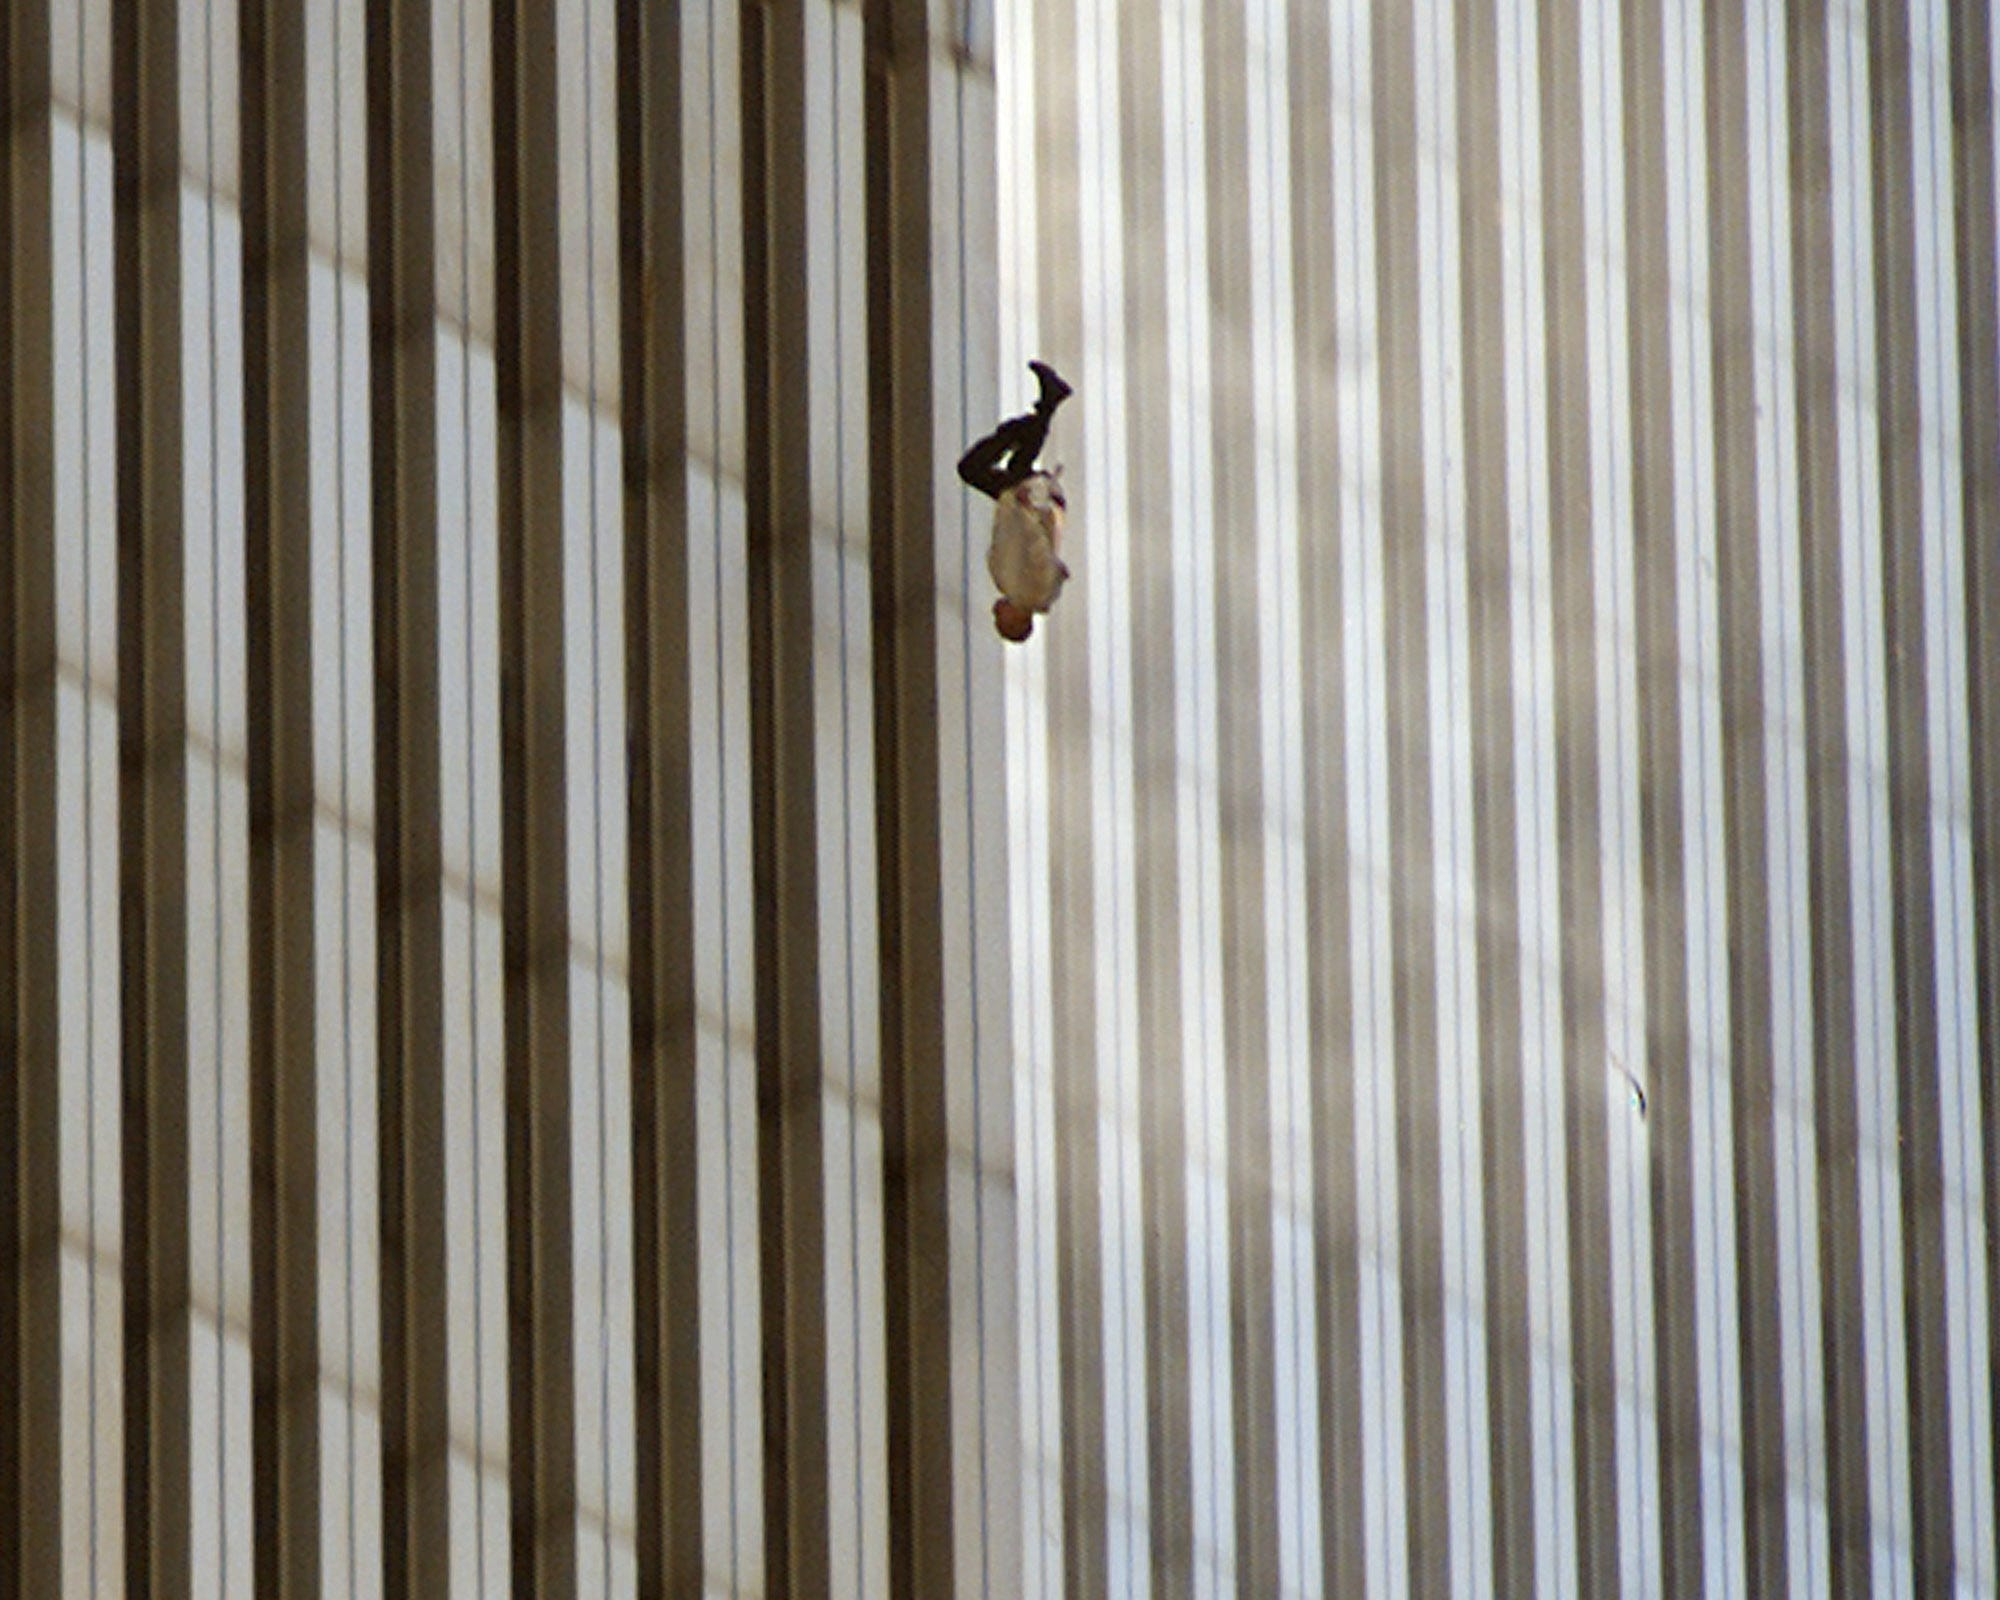 A person falls from the north tower of New York's World Trade Center.